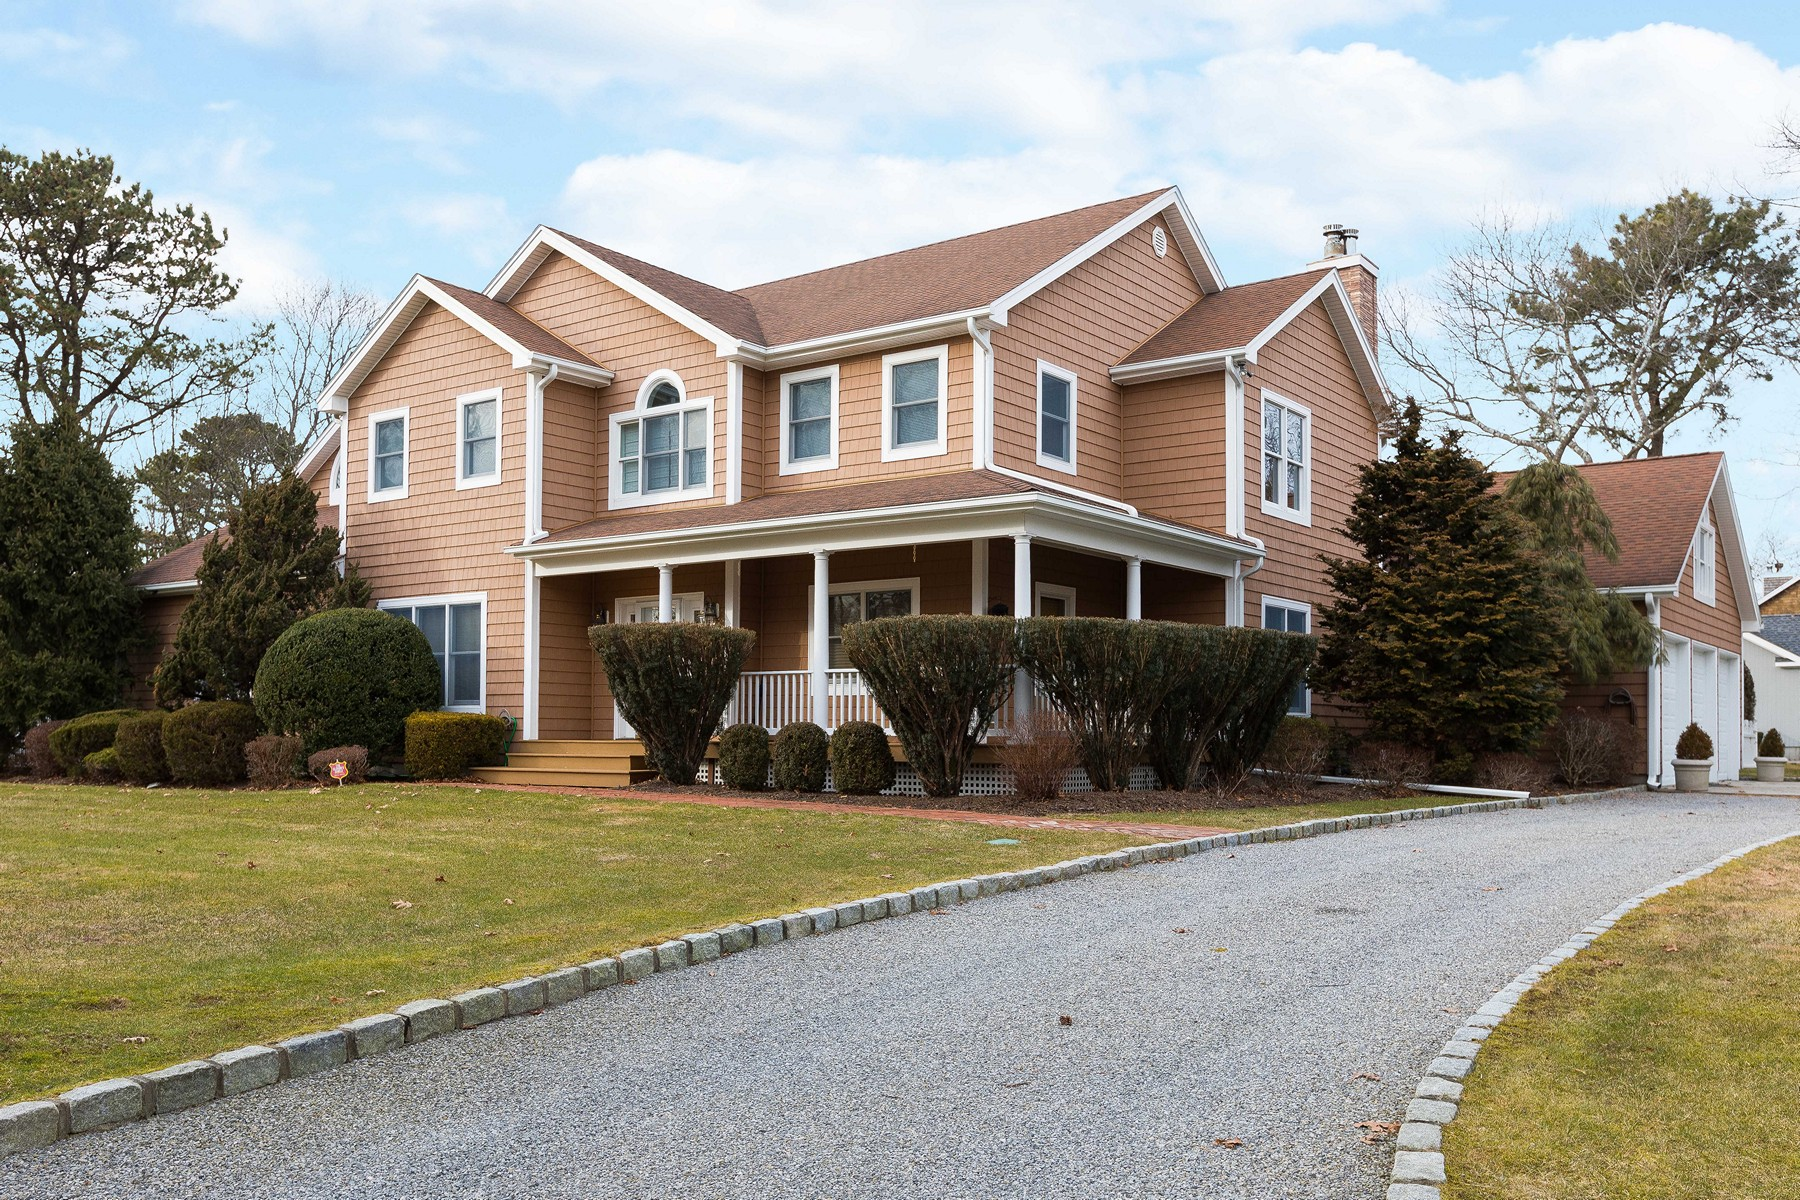 Single Family Home for Active at Westhampton Bch 1 Jeffrey Ln Westhampton Beach, New York 11978 United States